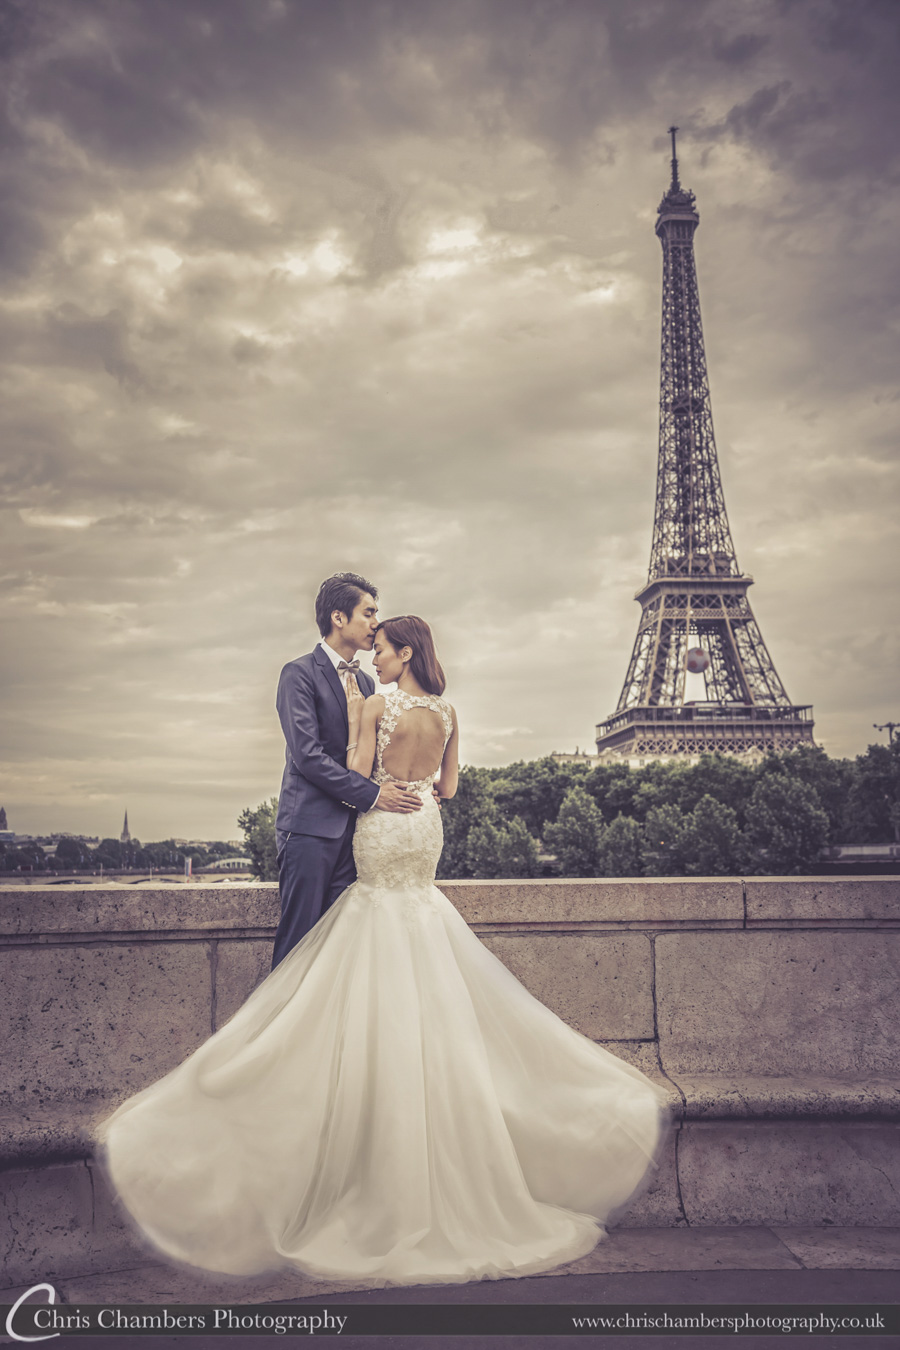 Paris wedding photography | Paris wedding photography | Eiffel Tower wedding photography | French wedding photography